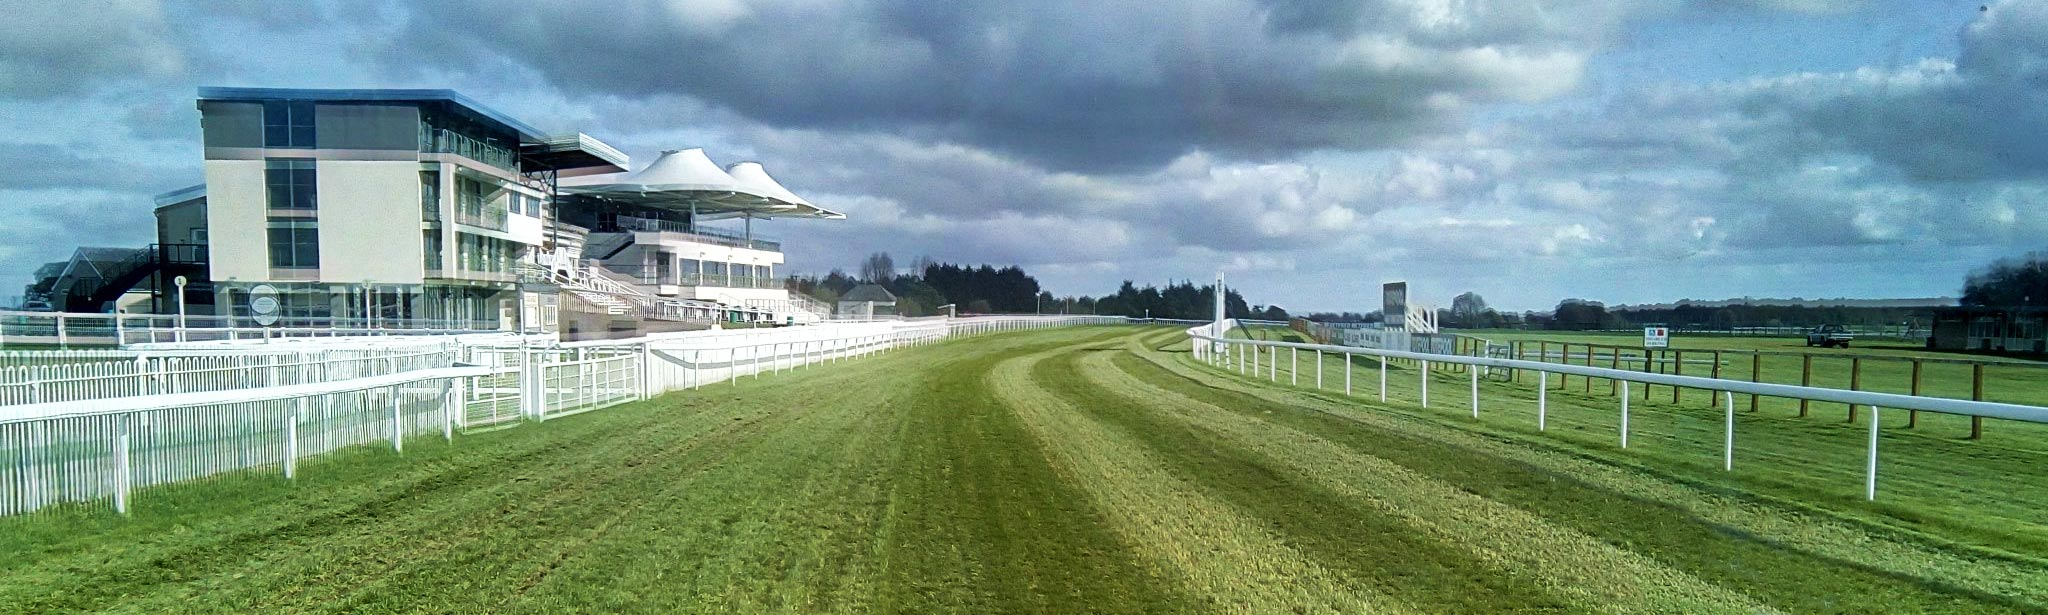 Peter Villars Sportsground Maintenance Racecourse Scarifying Bath Racecourse